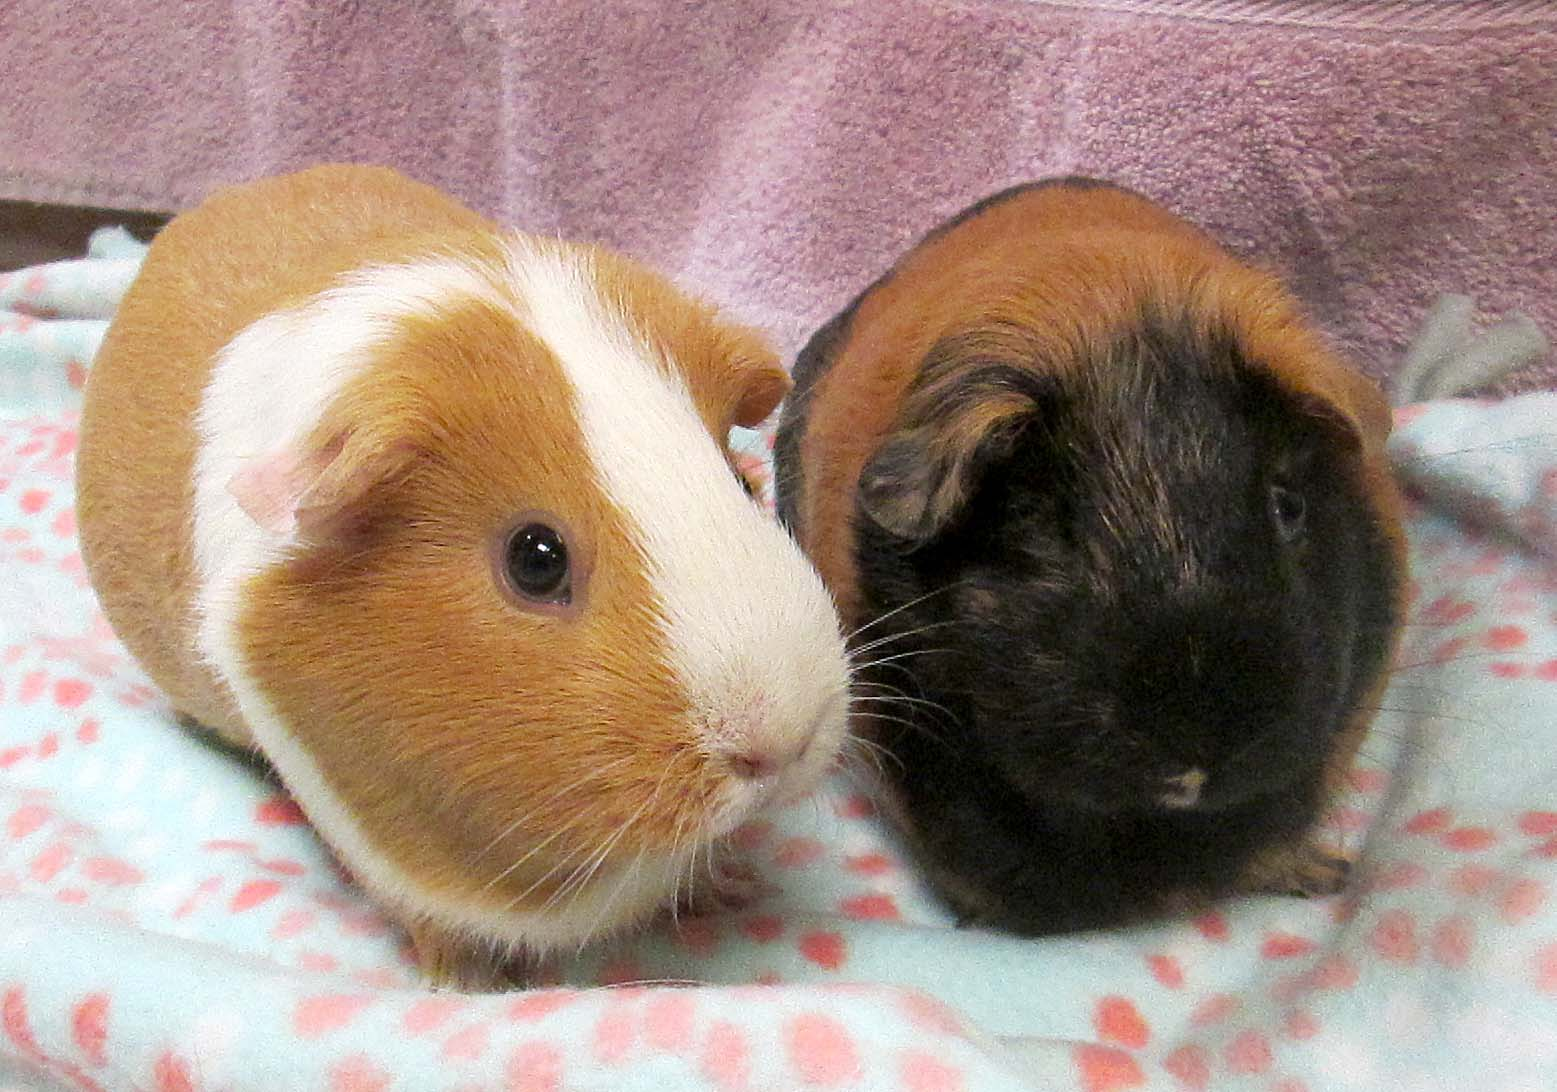 Lily and Nova are adult female Guinea Pigs. They enjoy each other's company and when they get used to your scent they will enjoy you as well. When they are happy, they let you know with a squeal or whistle!